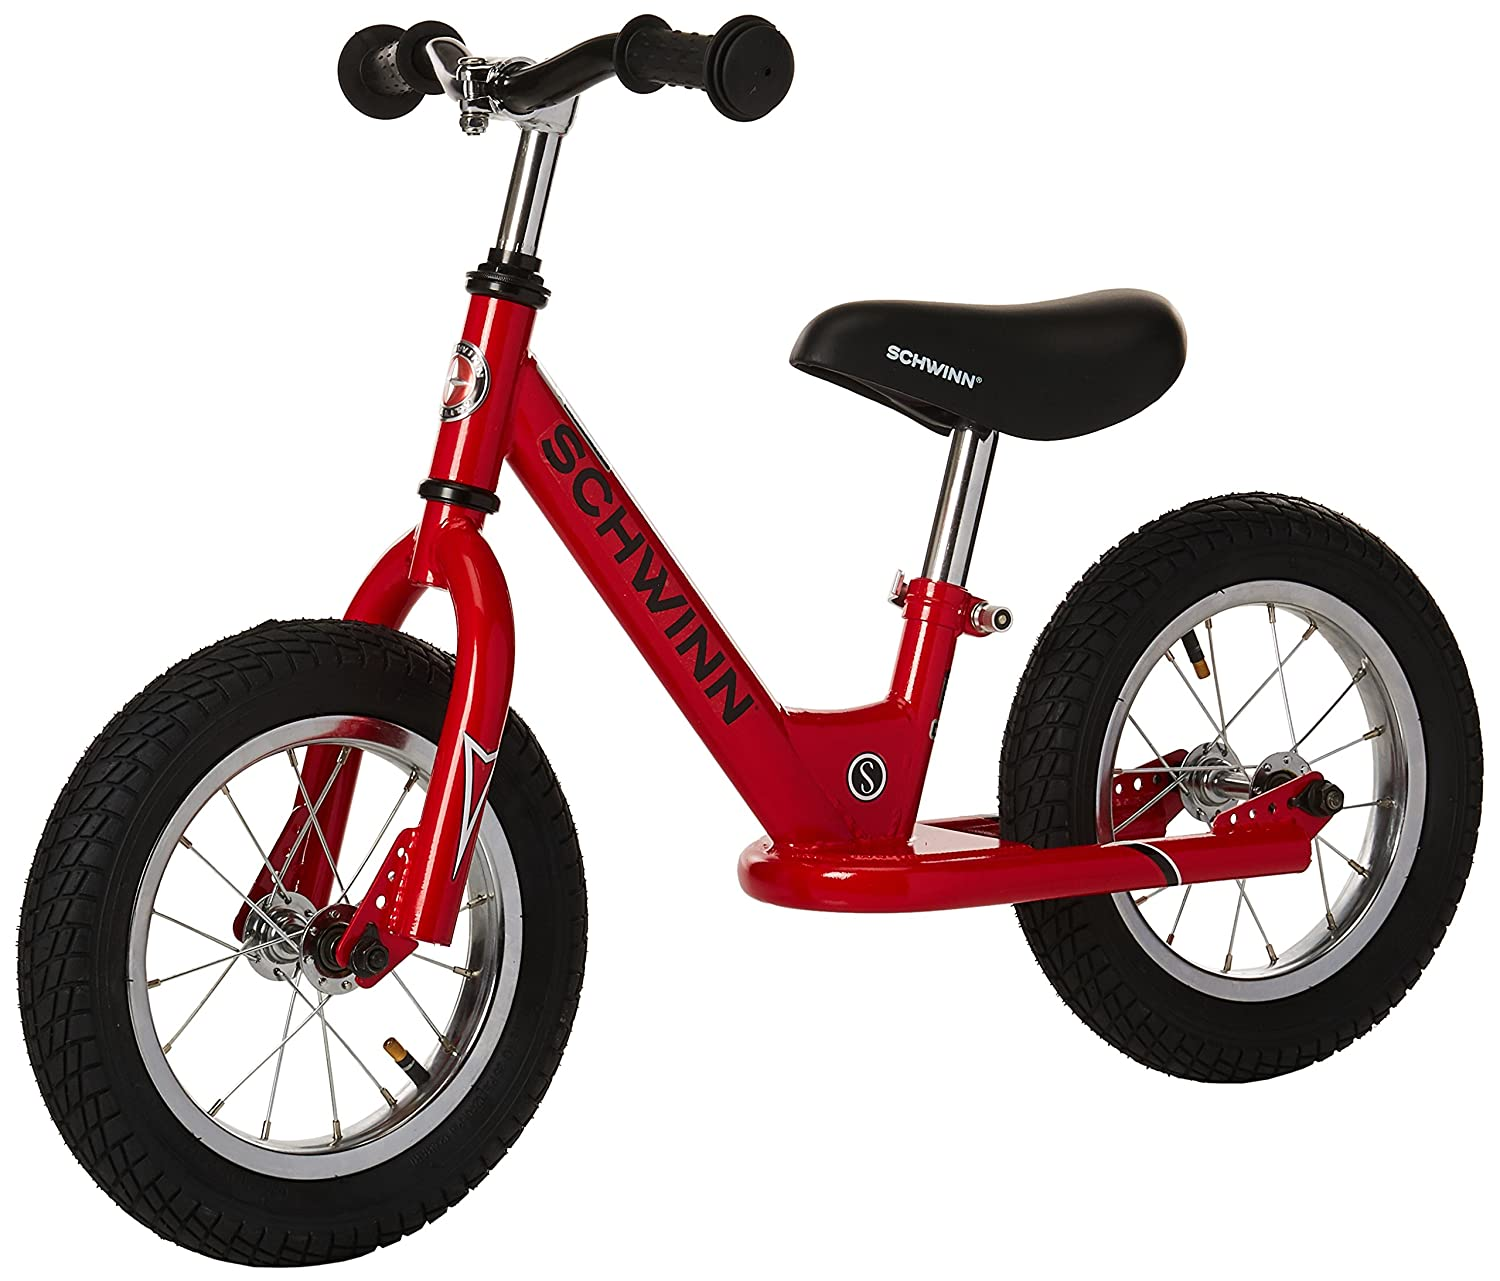 Schwinn Balance Bike, 12-Inch 12 inch wheel size stride bike Ages 2-4 Blue Pacific Cycle Inc.